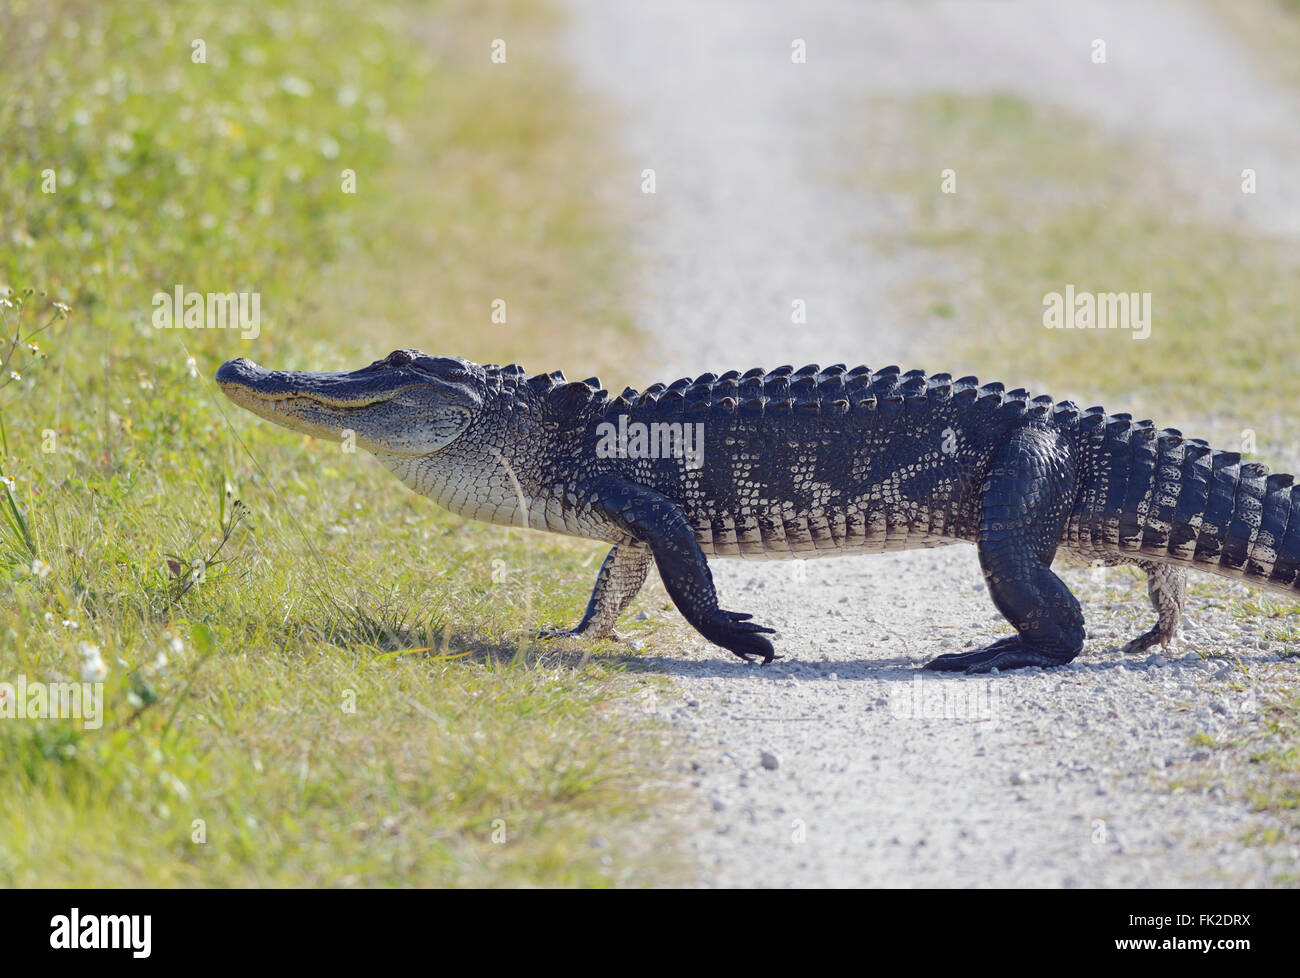 Florida Alligator Crossing the Road - Stock Image